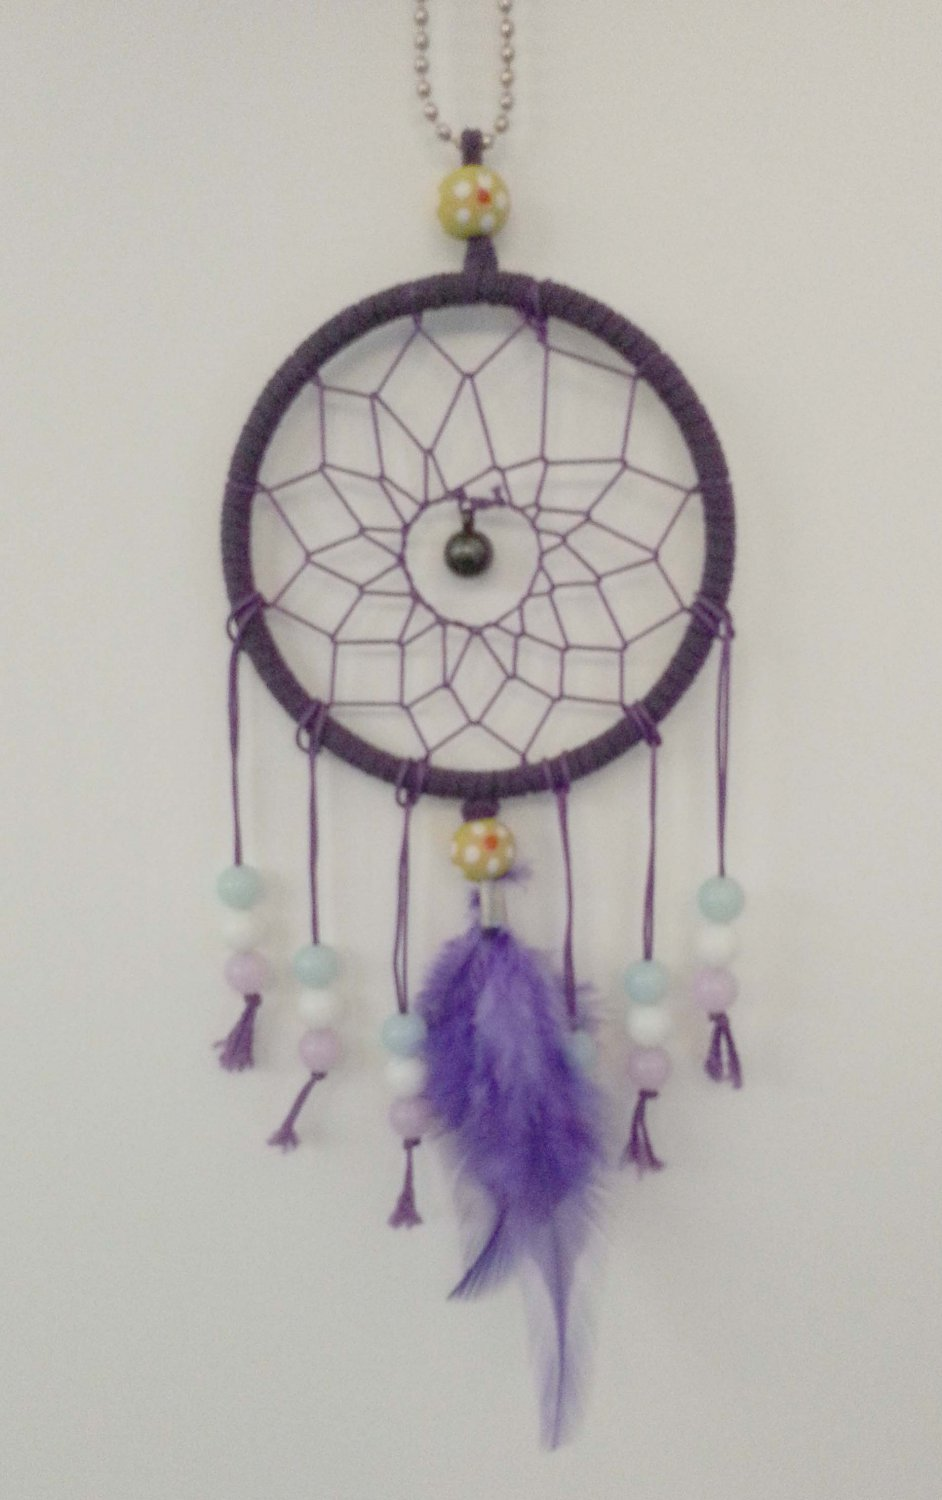 Handmade Dream Catcher w/ Feathers Beads Hanging Decoration Ornament Gift